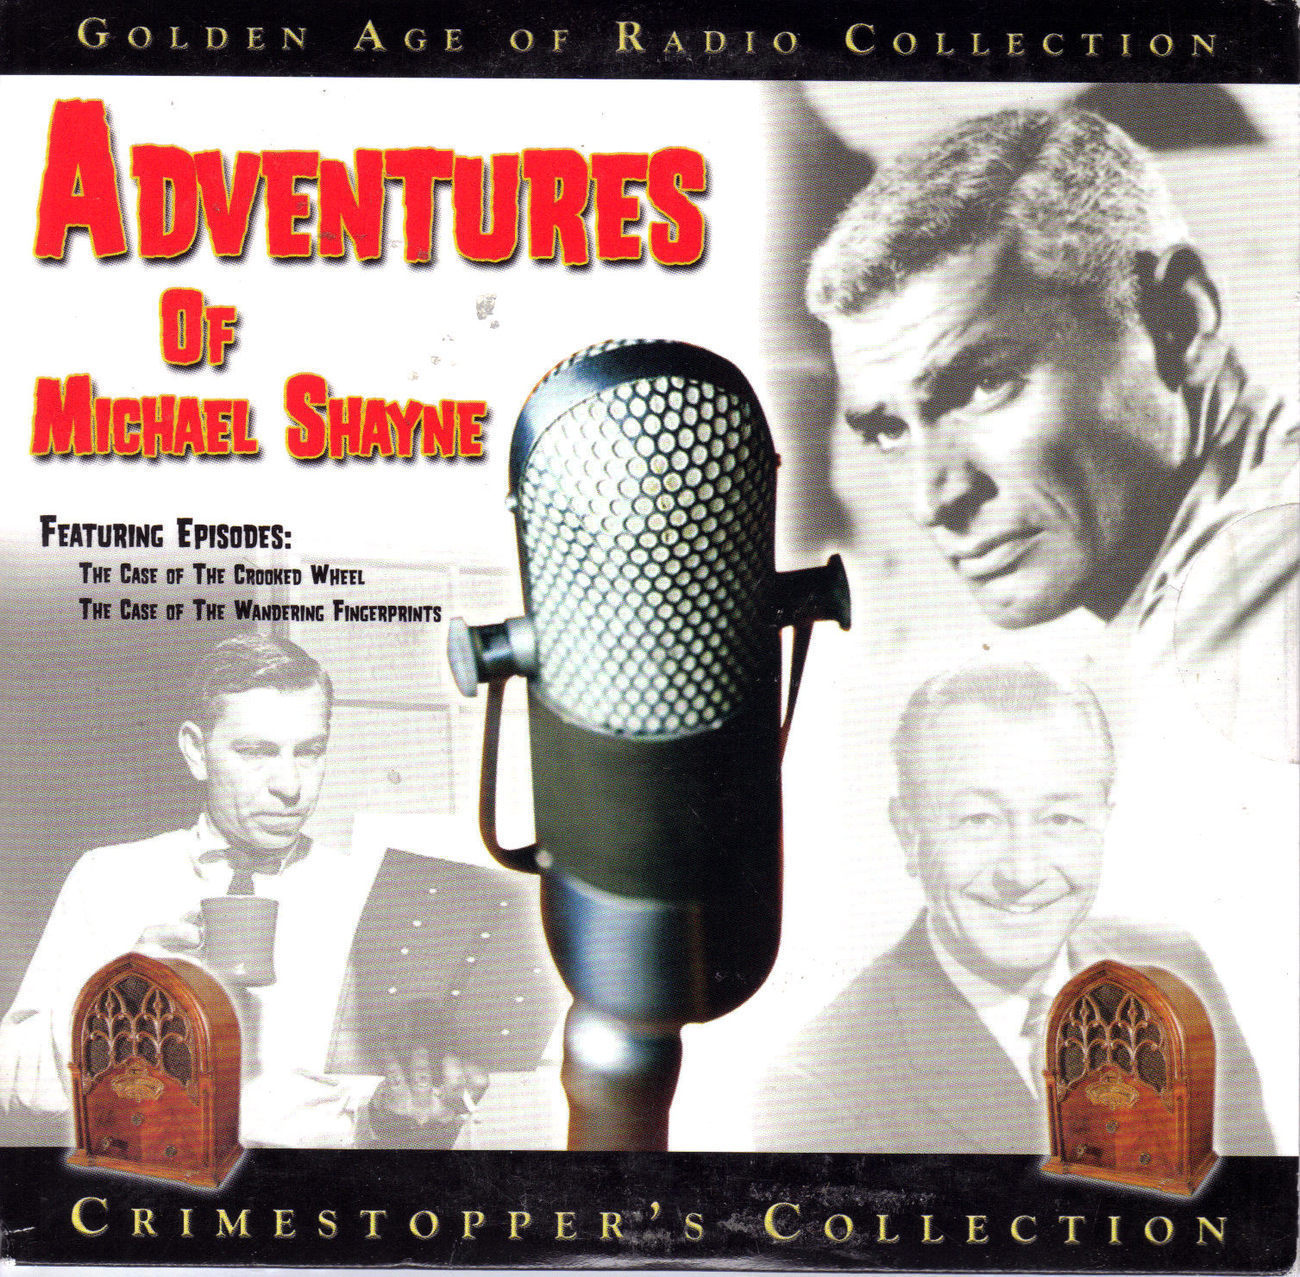 Radio adventures of michael shayne